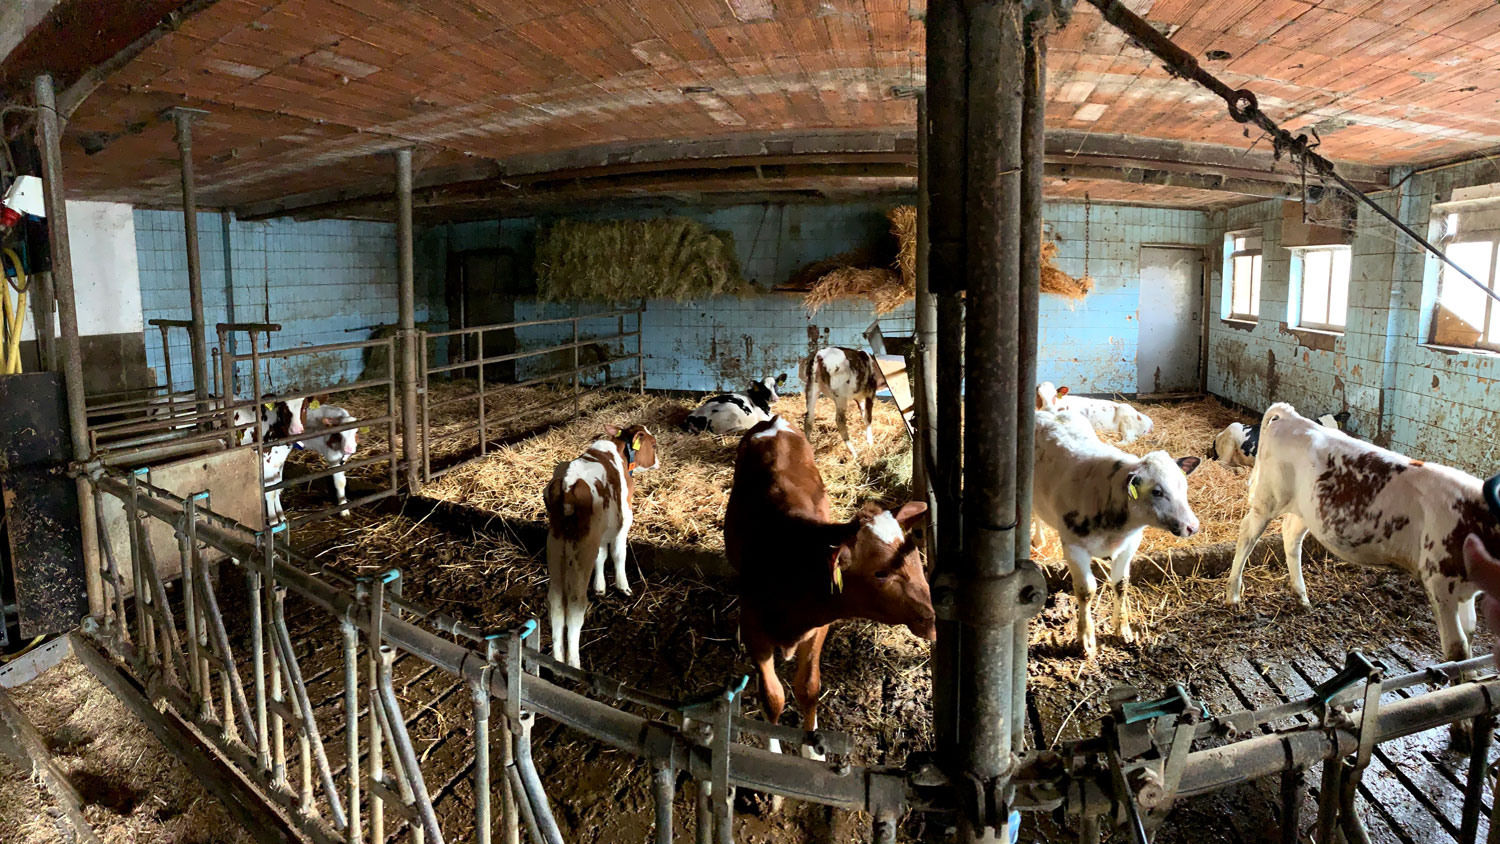 Cows in a dairy barn